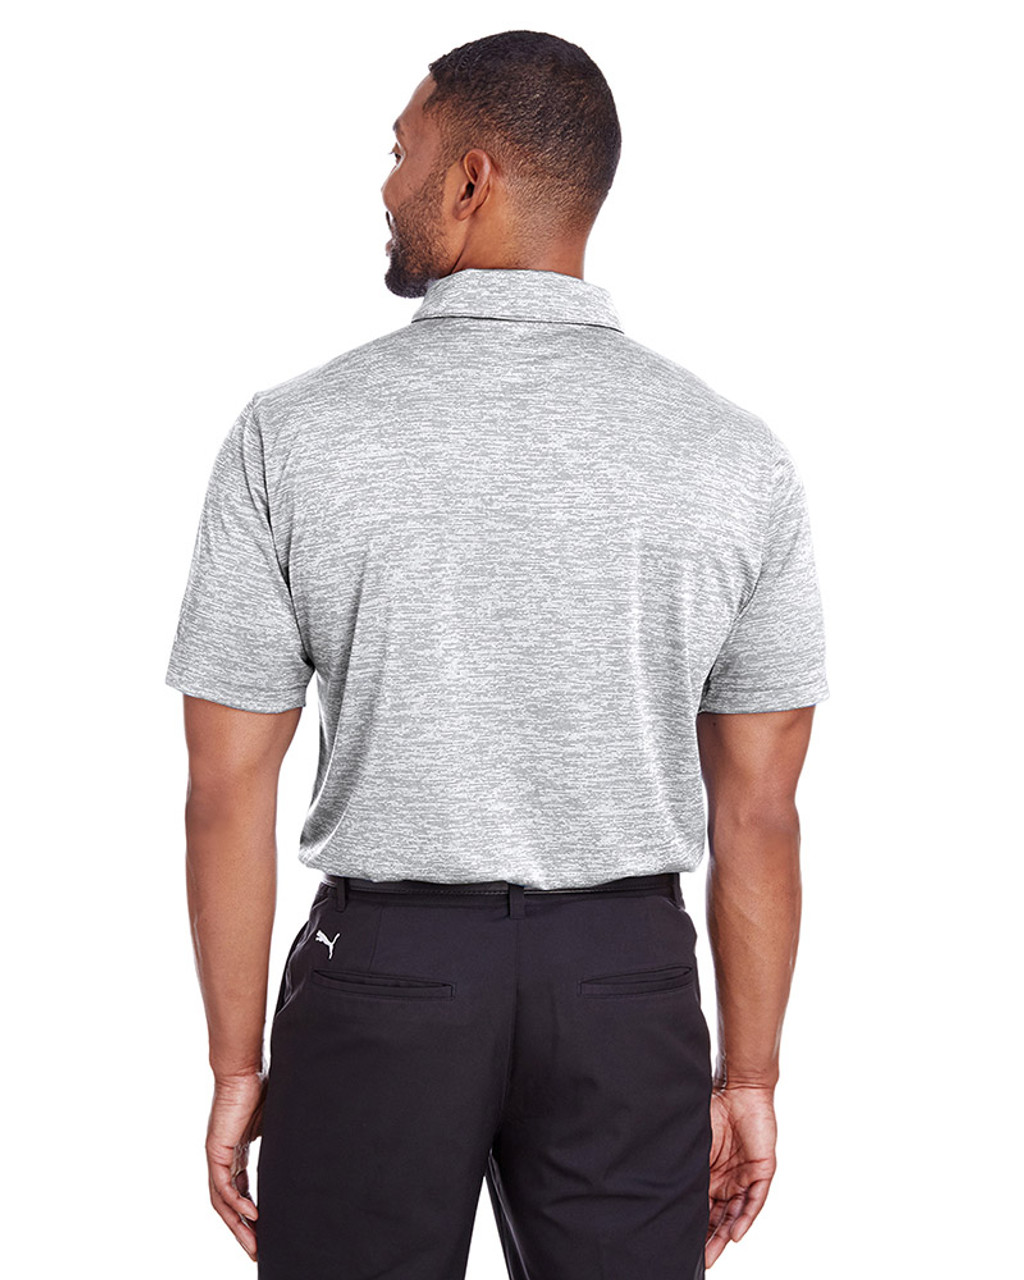 Bright White - back, 596801 Puma Golf Men's Icon Heather Polo | Blankclothing.ca